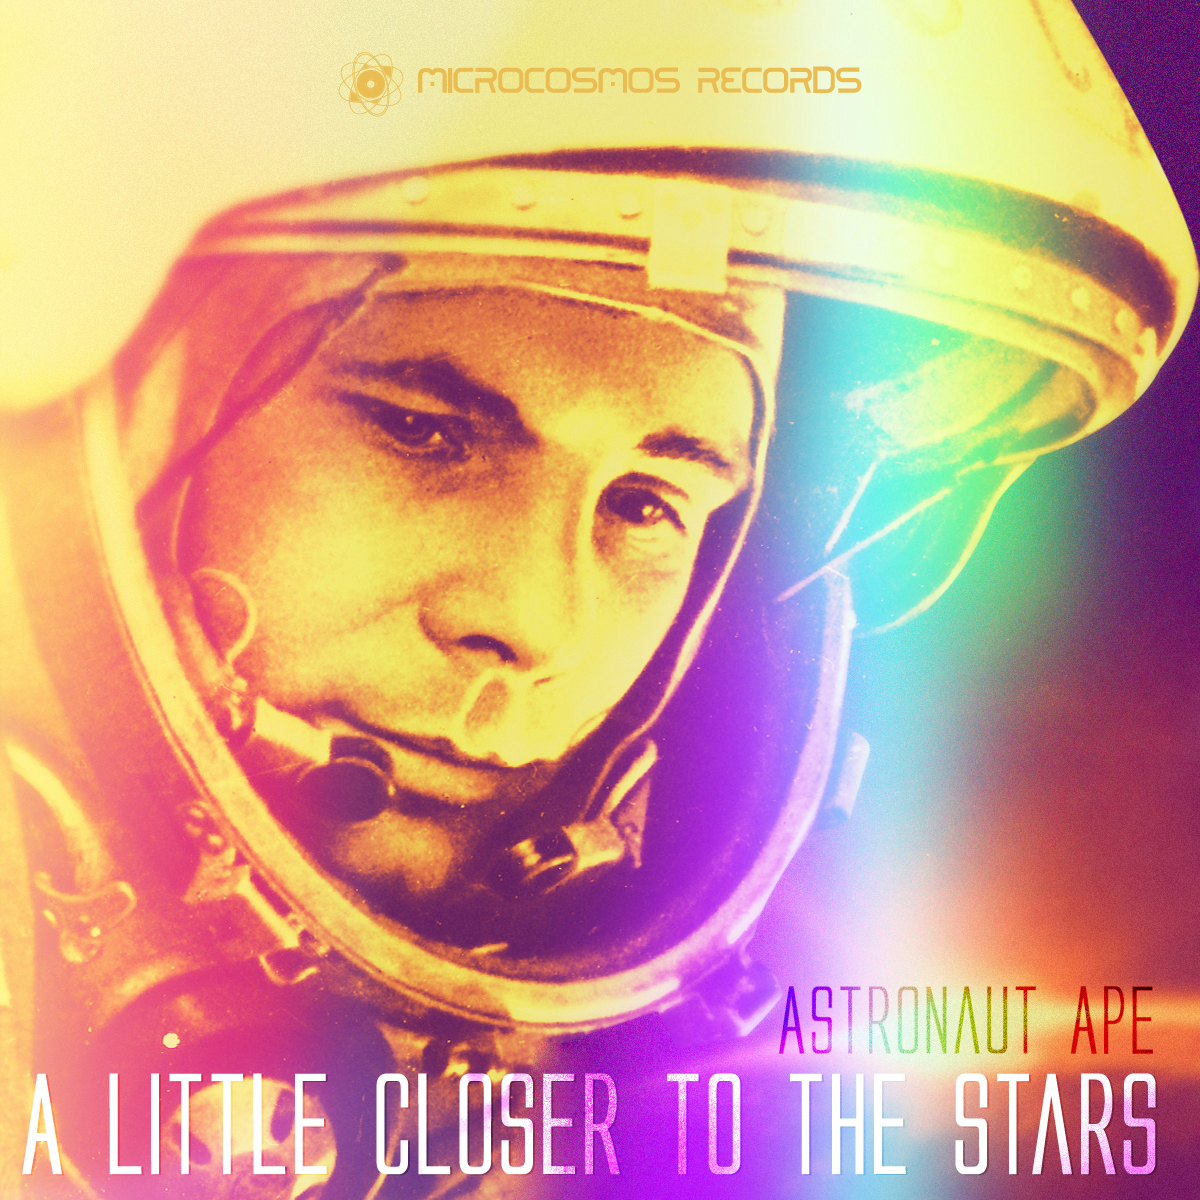 Astronaut Ape — A Little Closer To The Stars